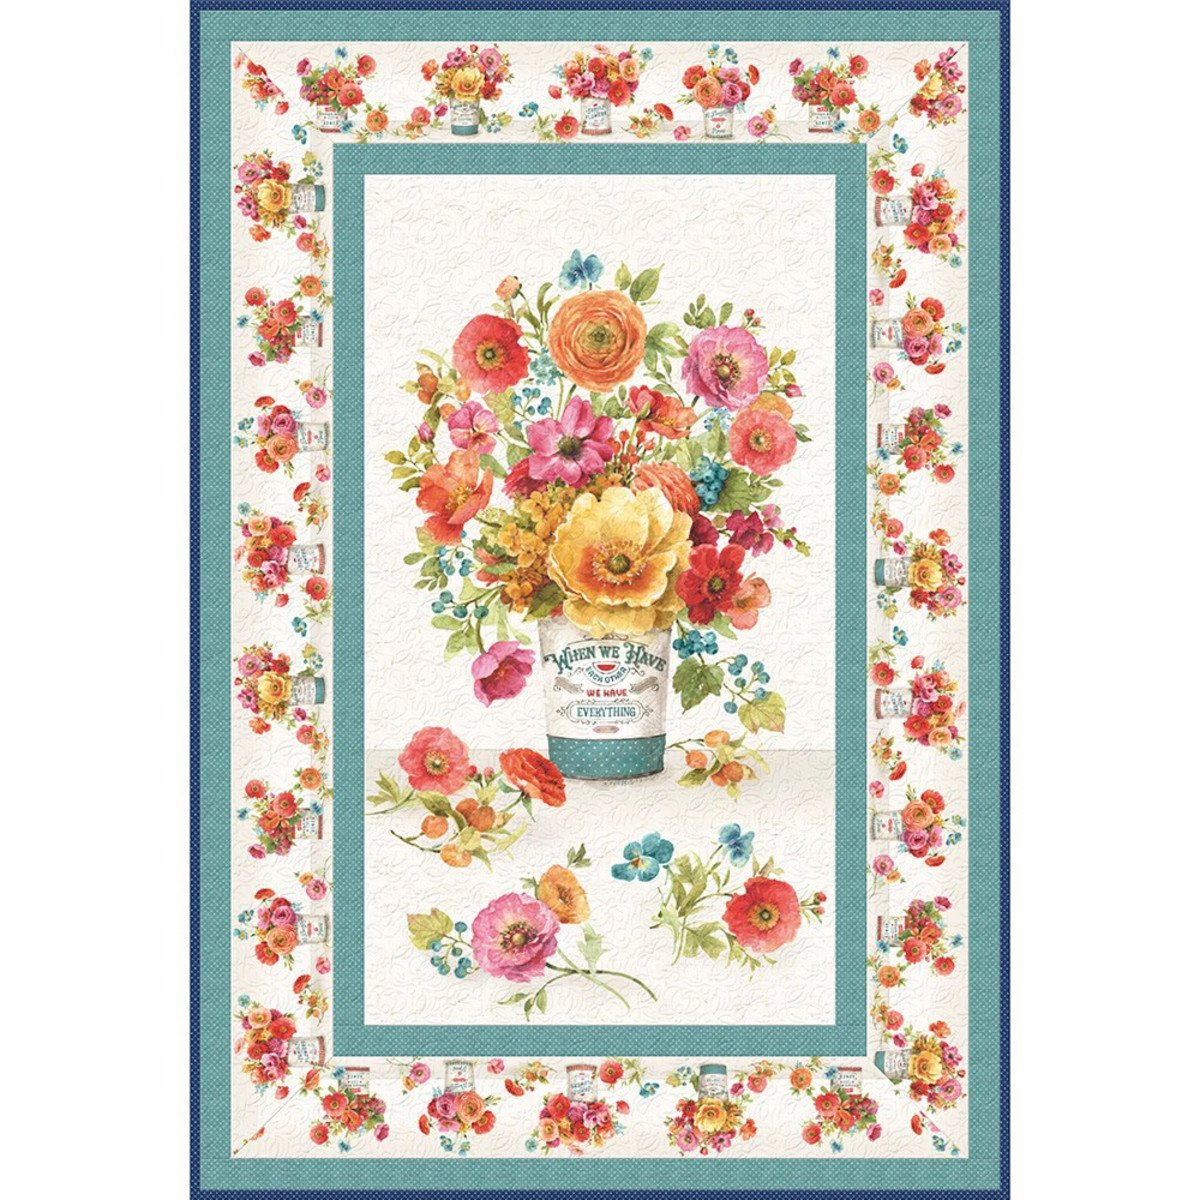 Roots of Love KIT 39 x 57 1/2